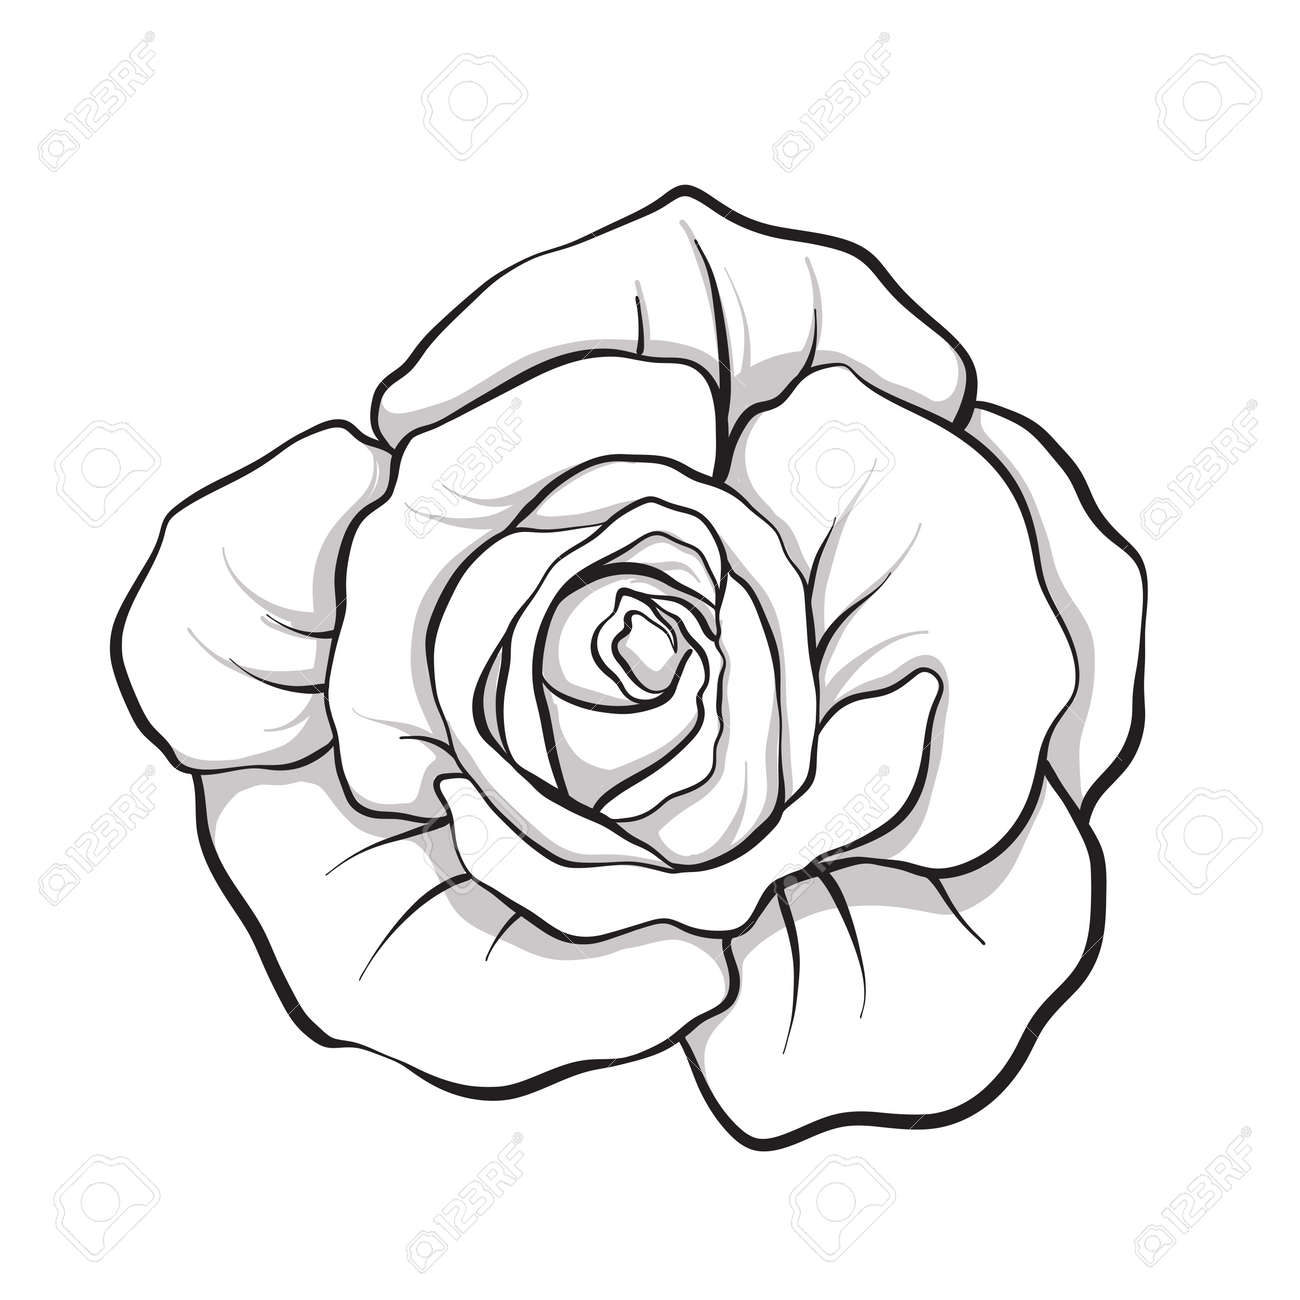 Rose Flower Isolated Outline Hand Drawn Stock Line Vector